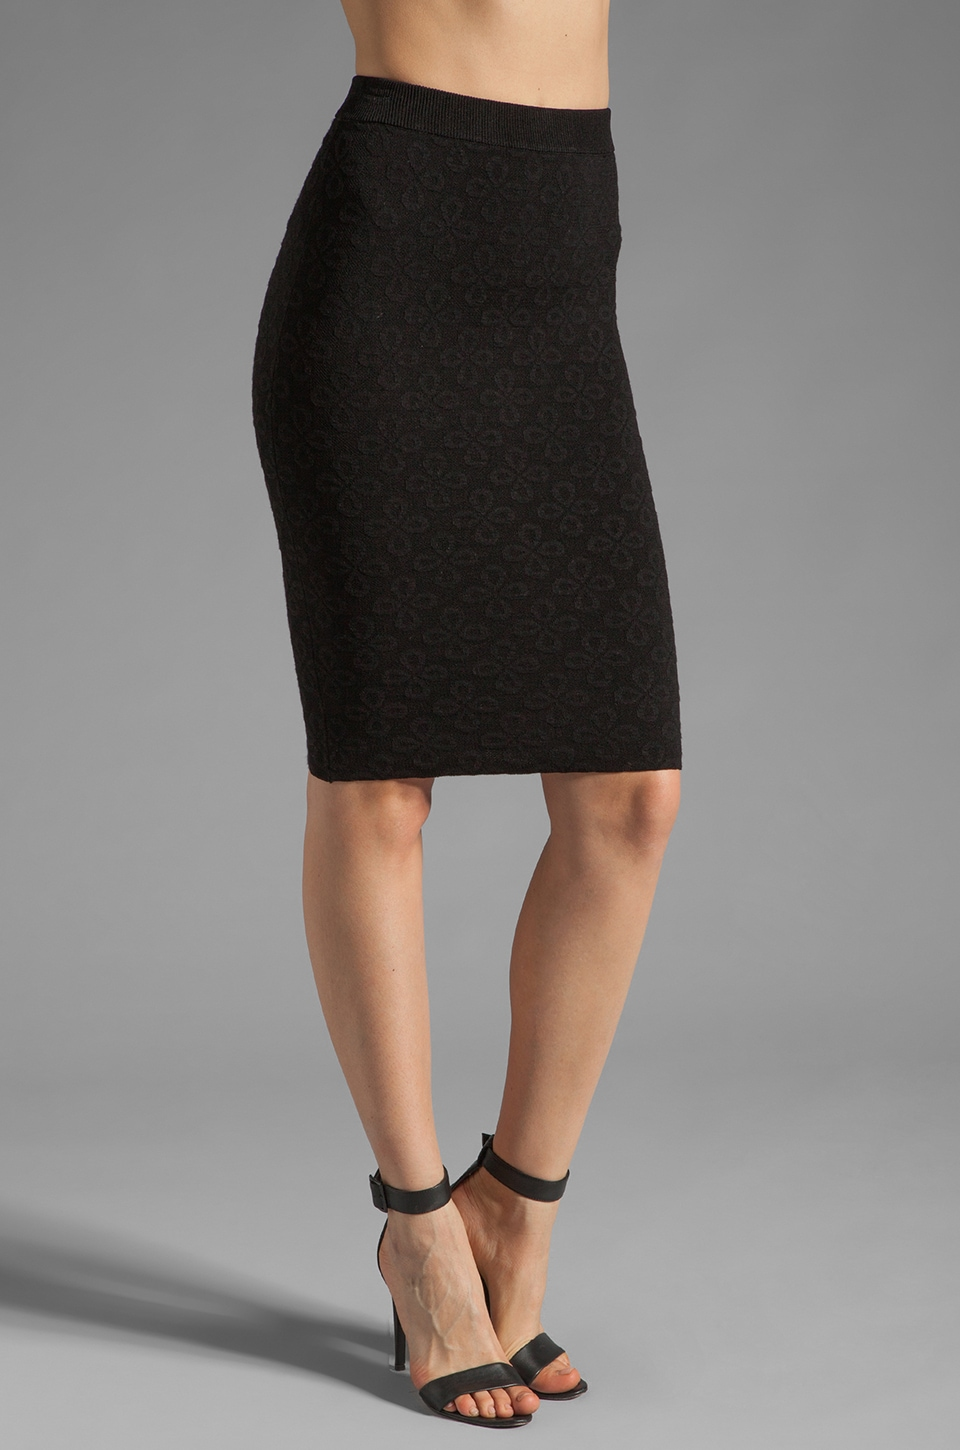 Torn by Ronny Kobo Celeste Eyelet Jacquard Skirt in Black